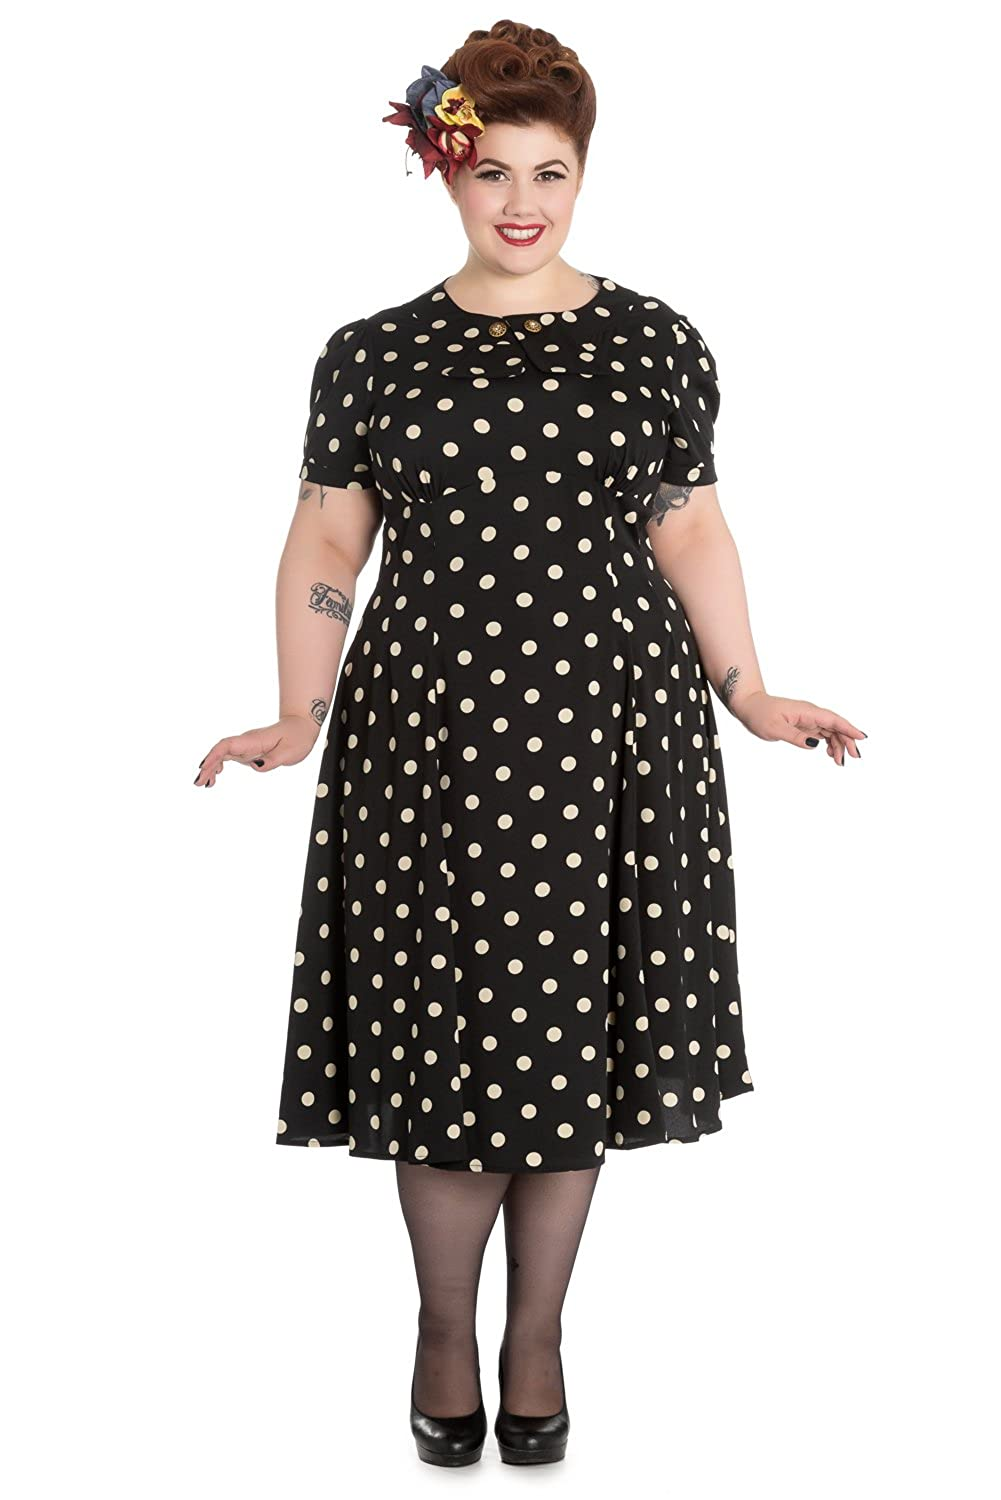 1940s Pinup Dresses for Sale Hell Bunny Plus Size Sweet Office Lady Black Mod Polka Dot Dress $72.00 AT vintagedancer.com